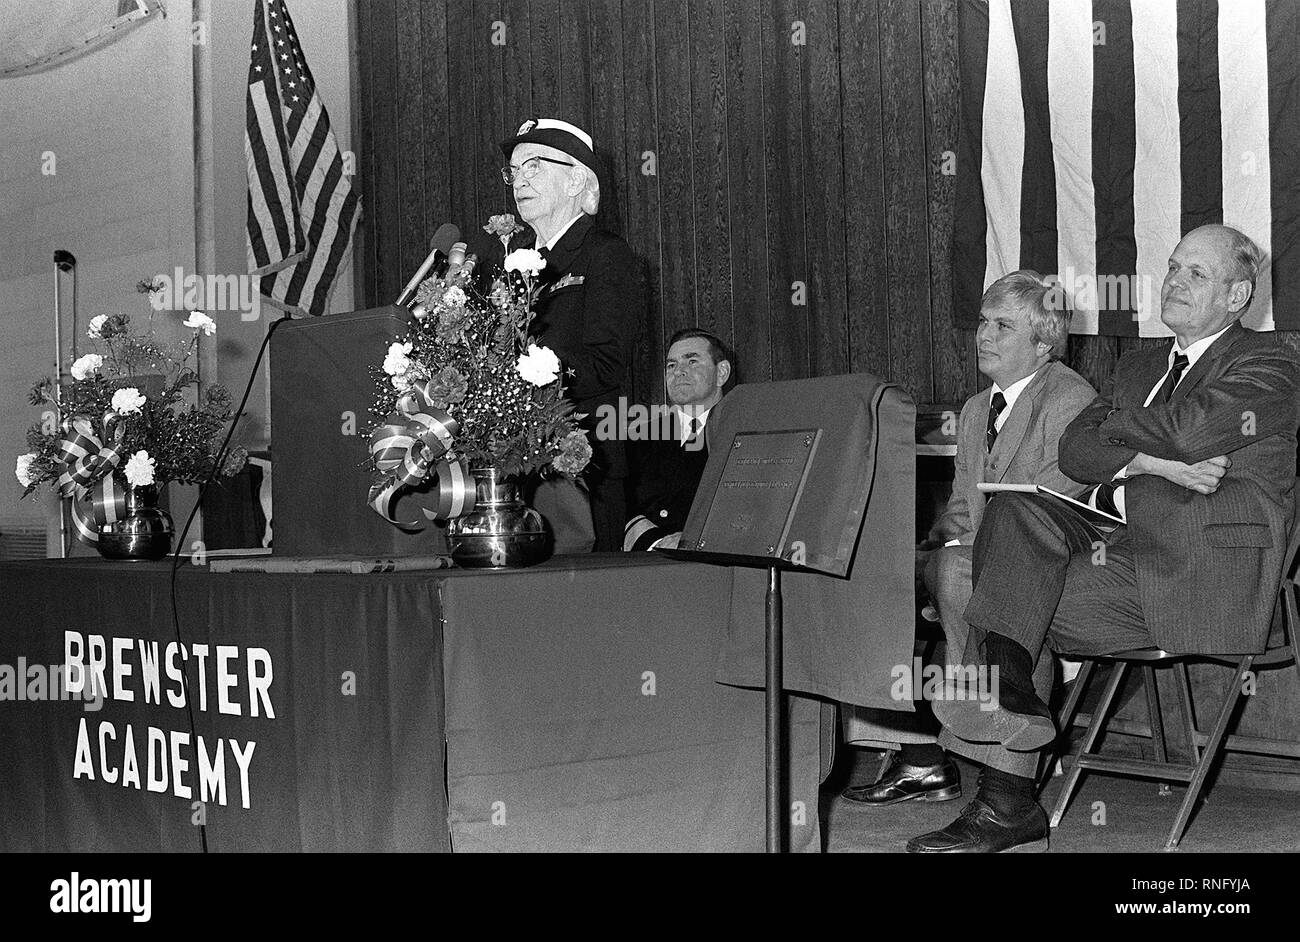 1983 - Capt. Grace Murray Hopper speaks at a ceremony taking place to dedicate a center for computer learning in her name at Brewster Academy. - Stock Image